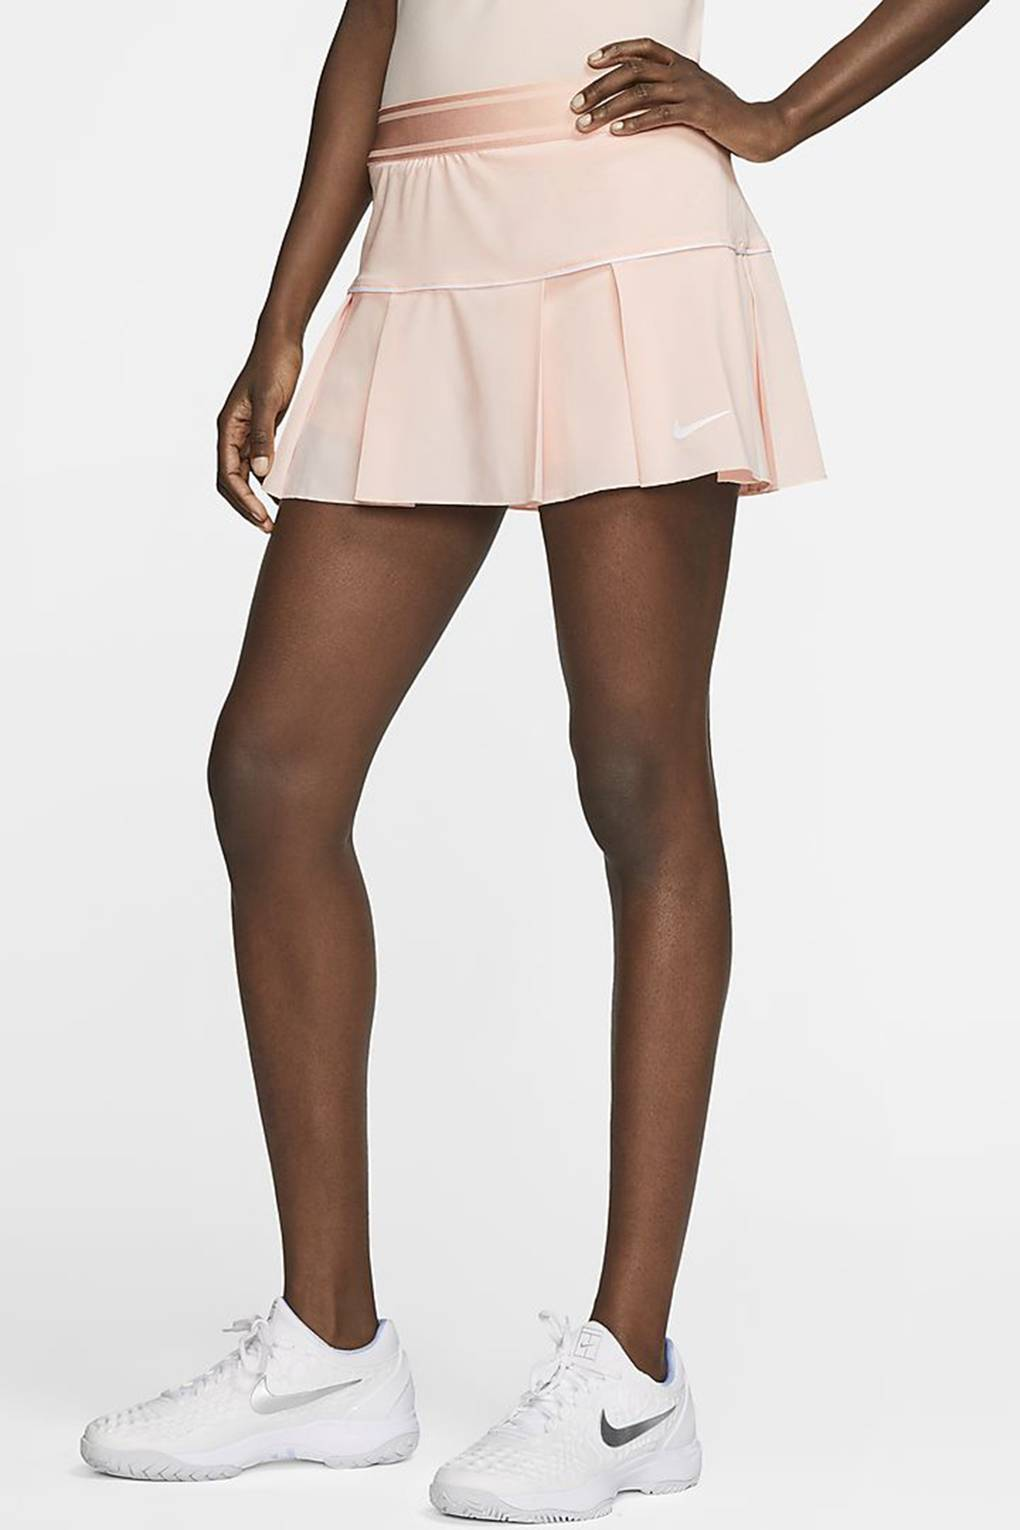 17 Best Tennis Skirts Dresses 2020 For Playing Working Out Glamour Uk